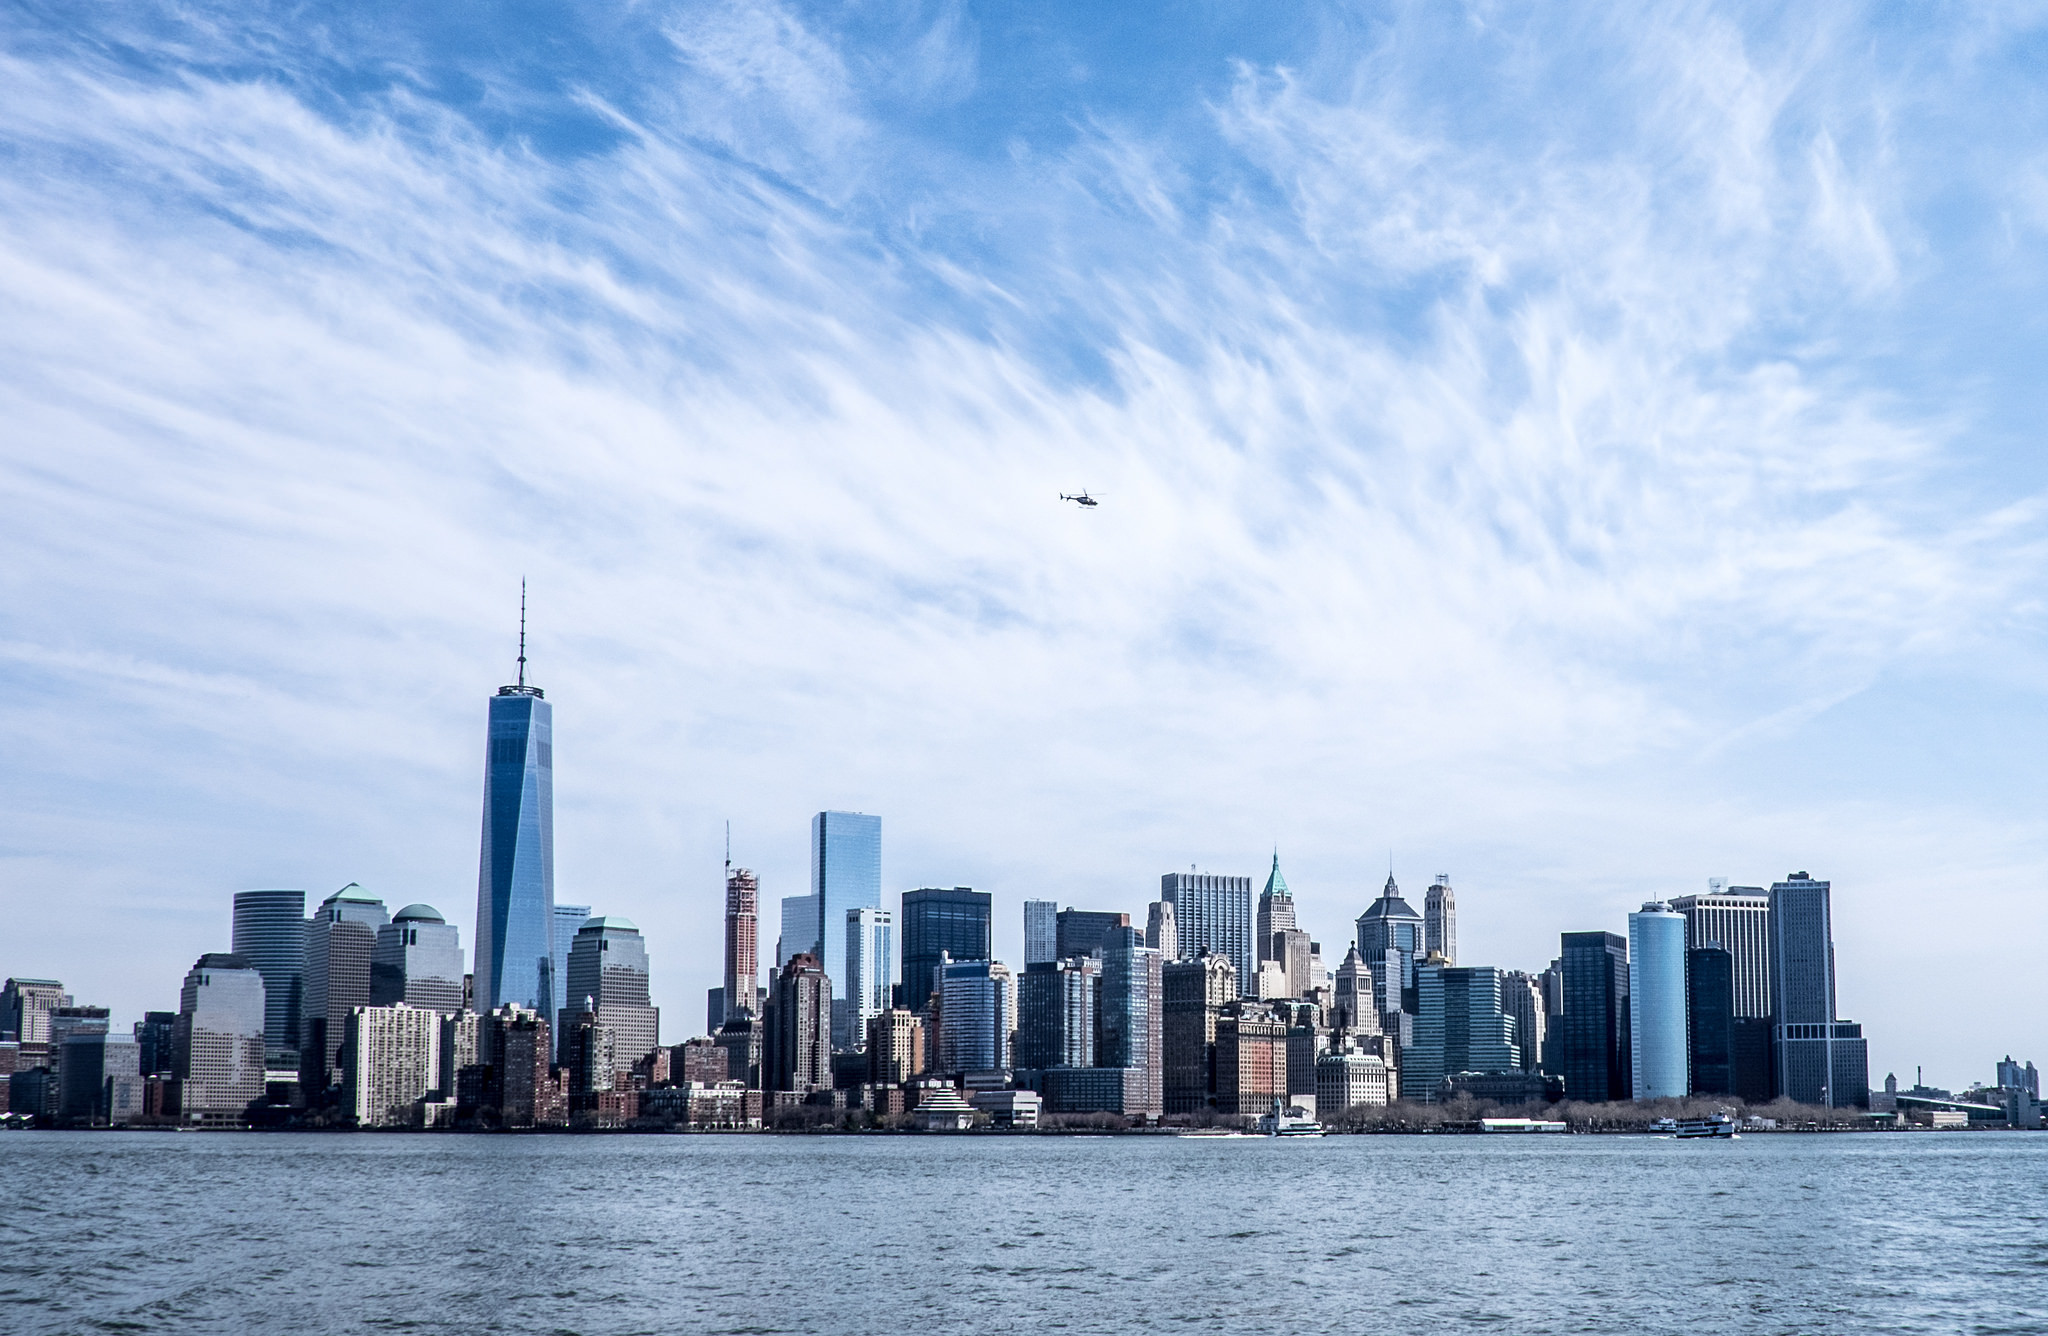 The first-ever drone race set against the NYC skyline is happening next week